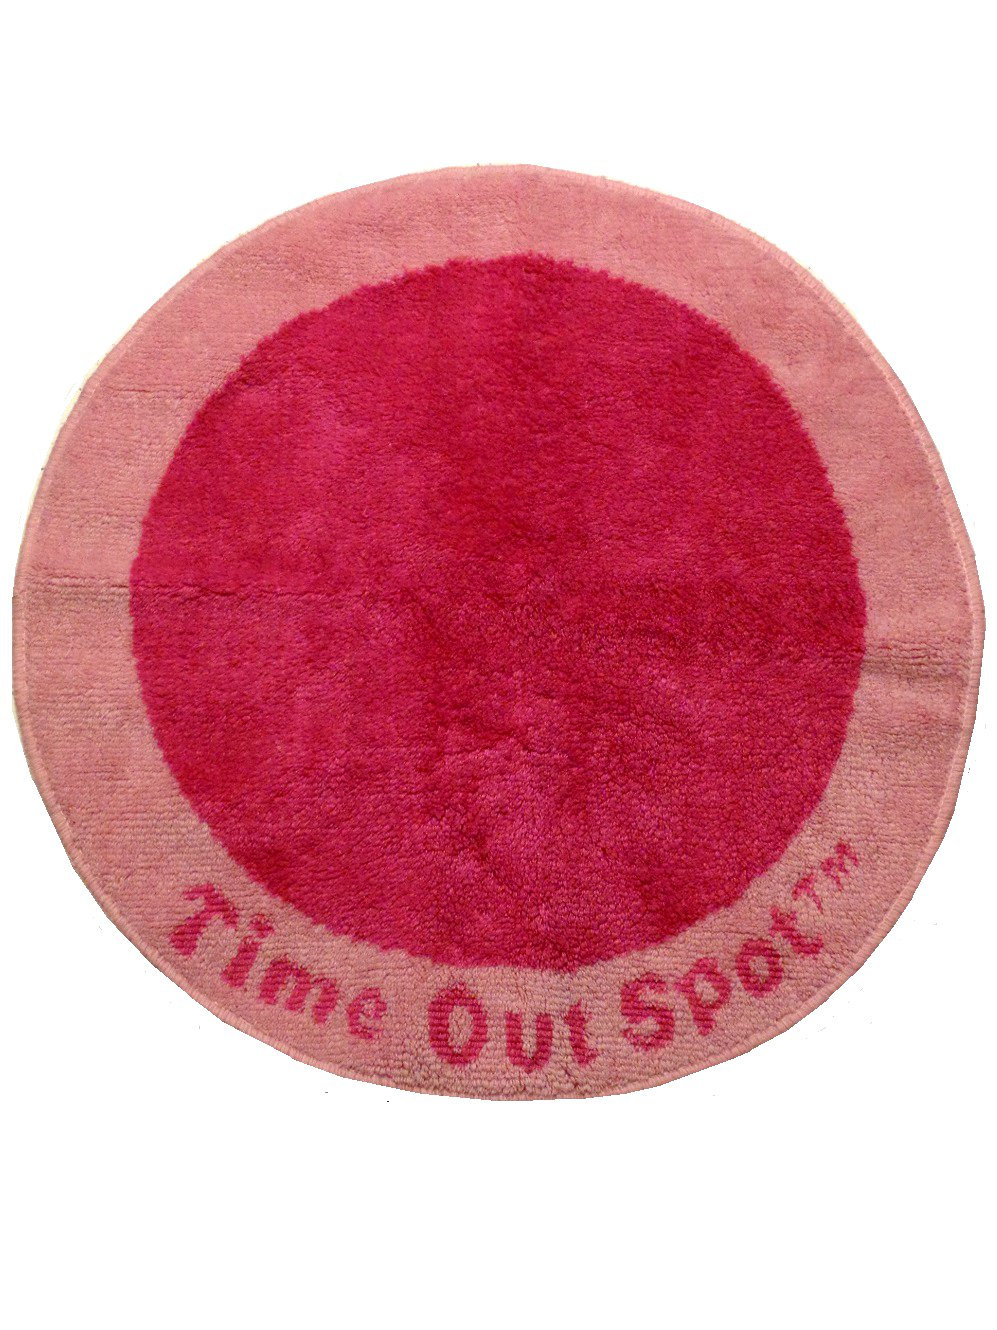 Toddler Child Time Out Rug Round Pink Mat